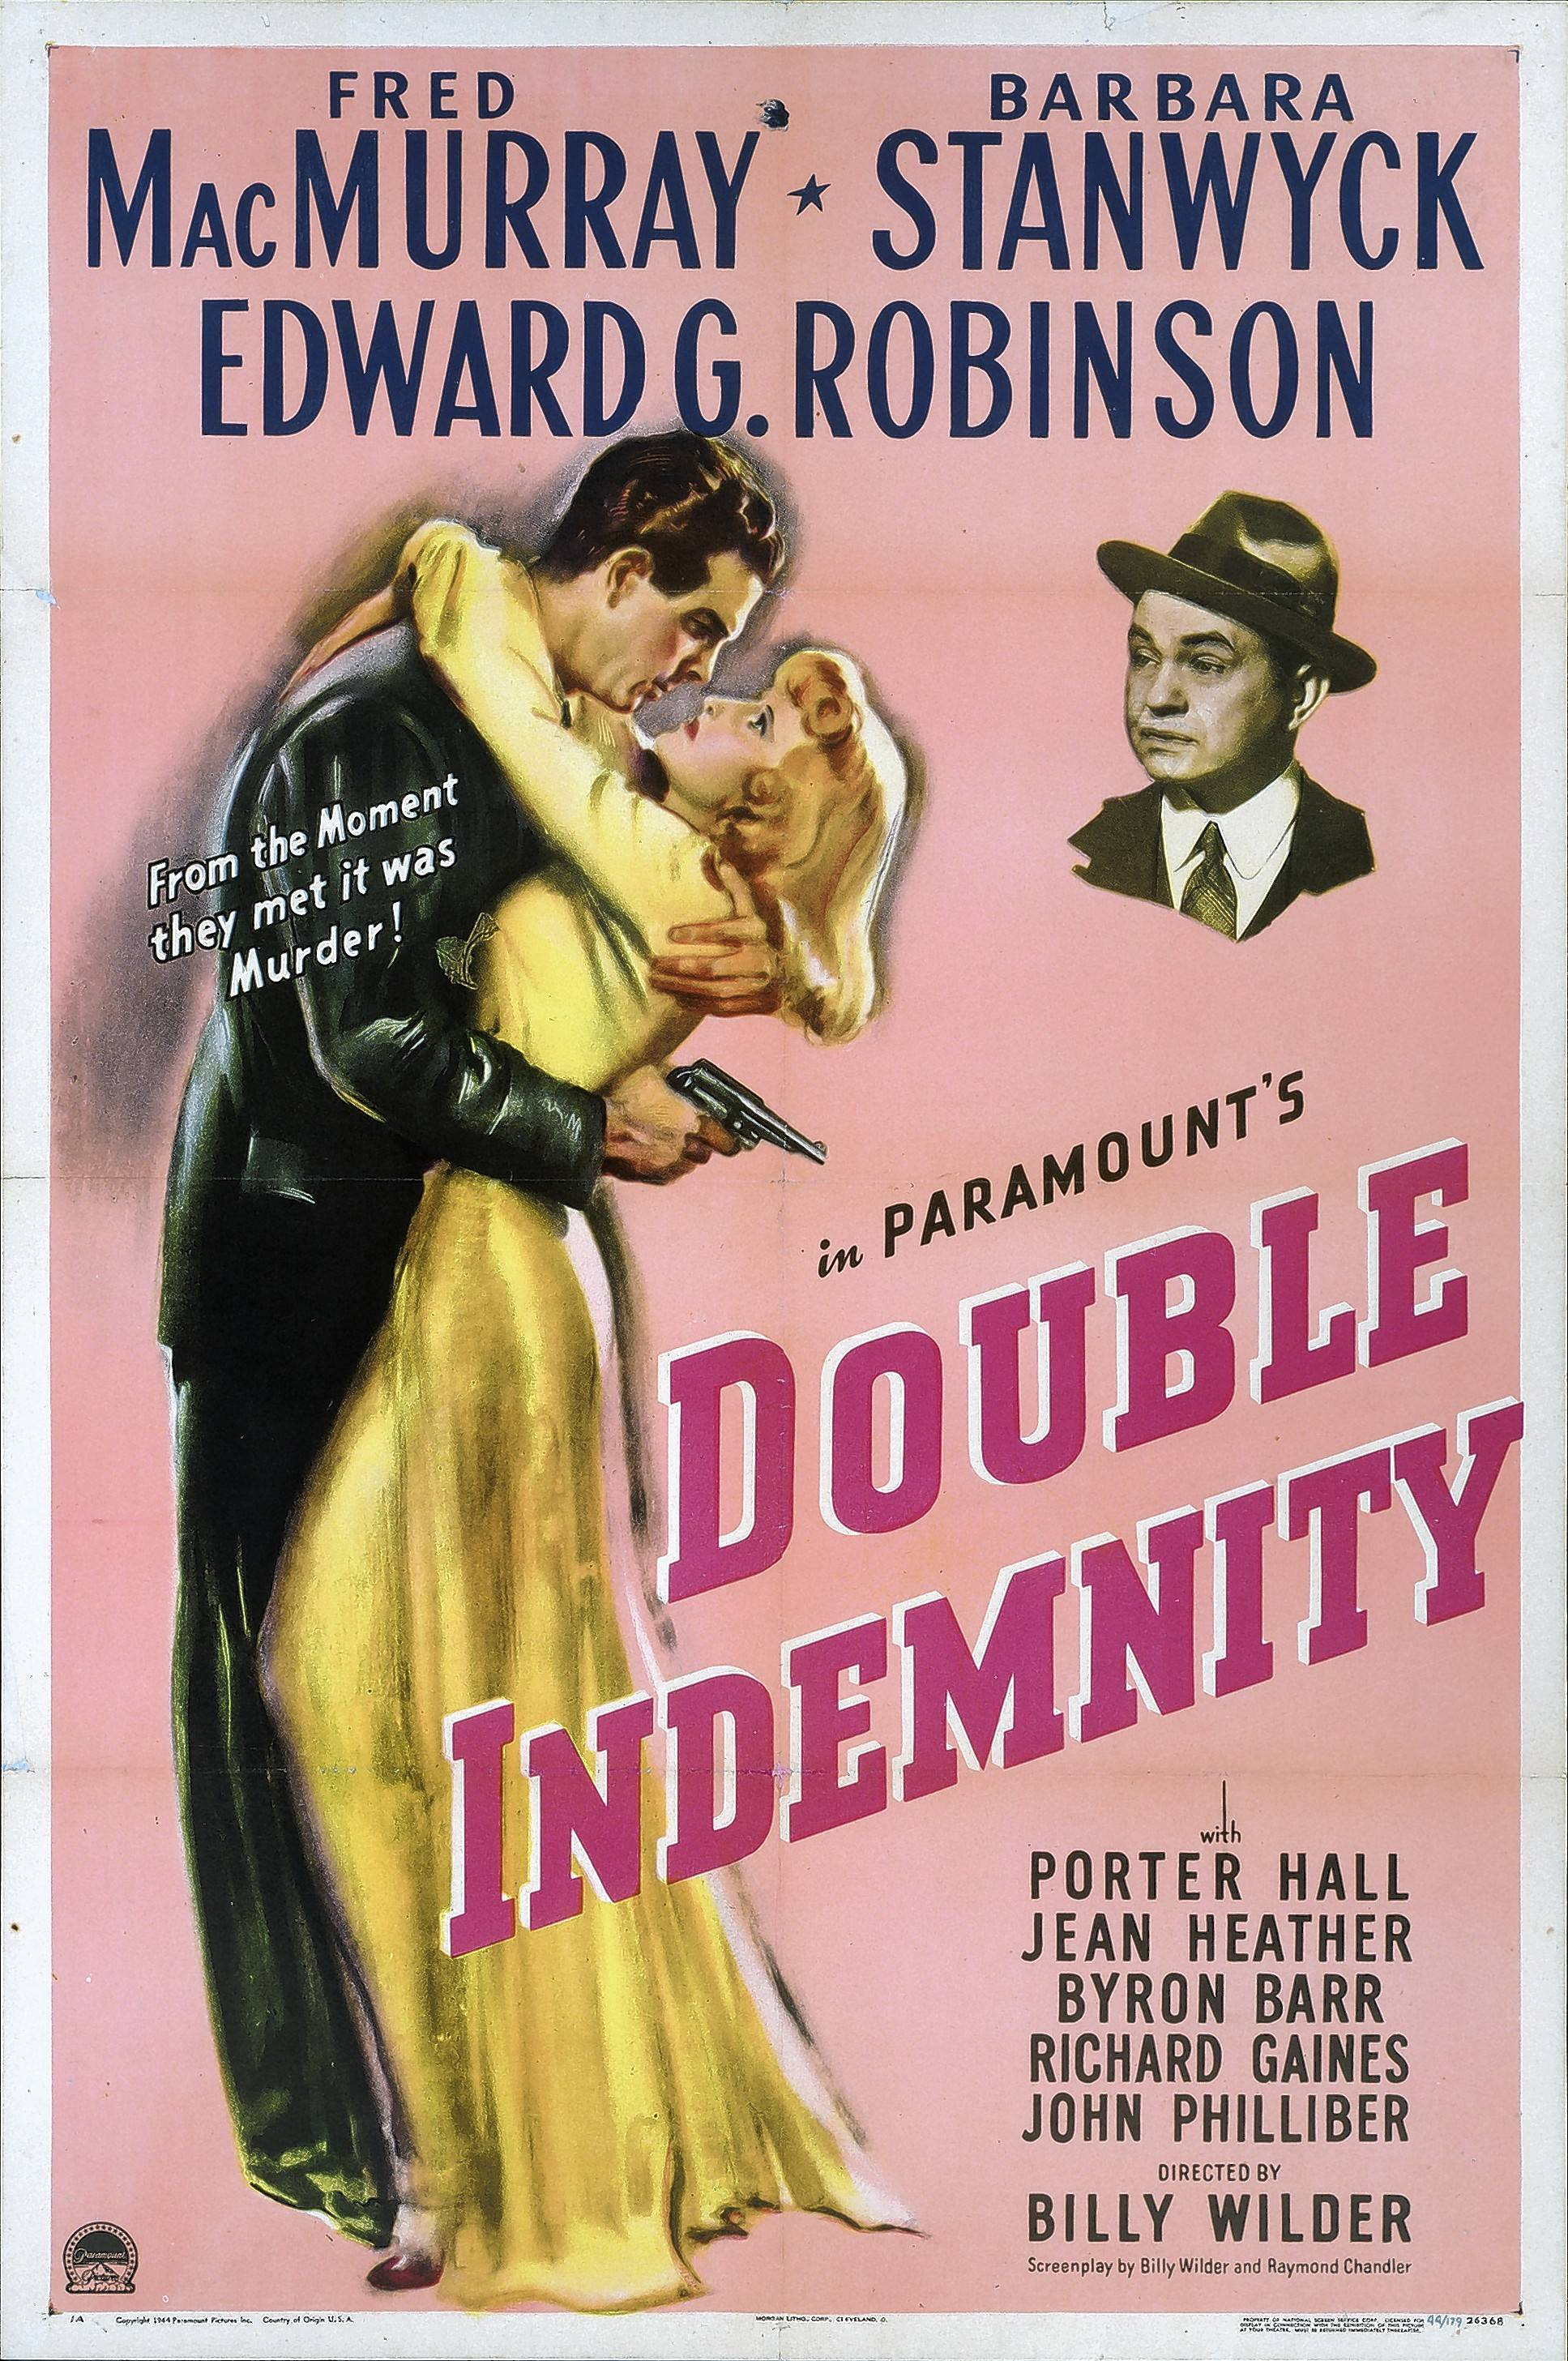 """Double Indemnity,"" starring Fred MacMurray and Barbara Stanwyck, exemplified the emerging film noir genre during World War II. The 1944 drama was directed by Billy Wilder, a Jewish filmmaker who fled the Nazis."